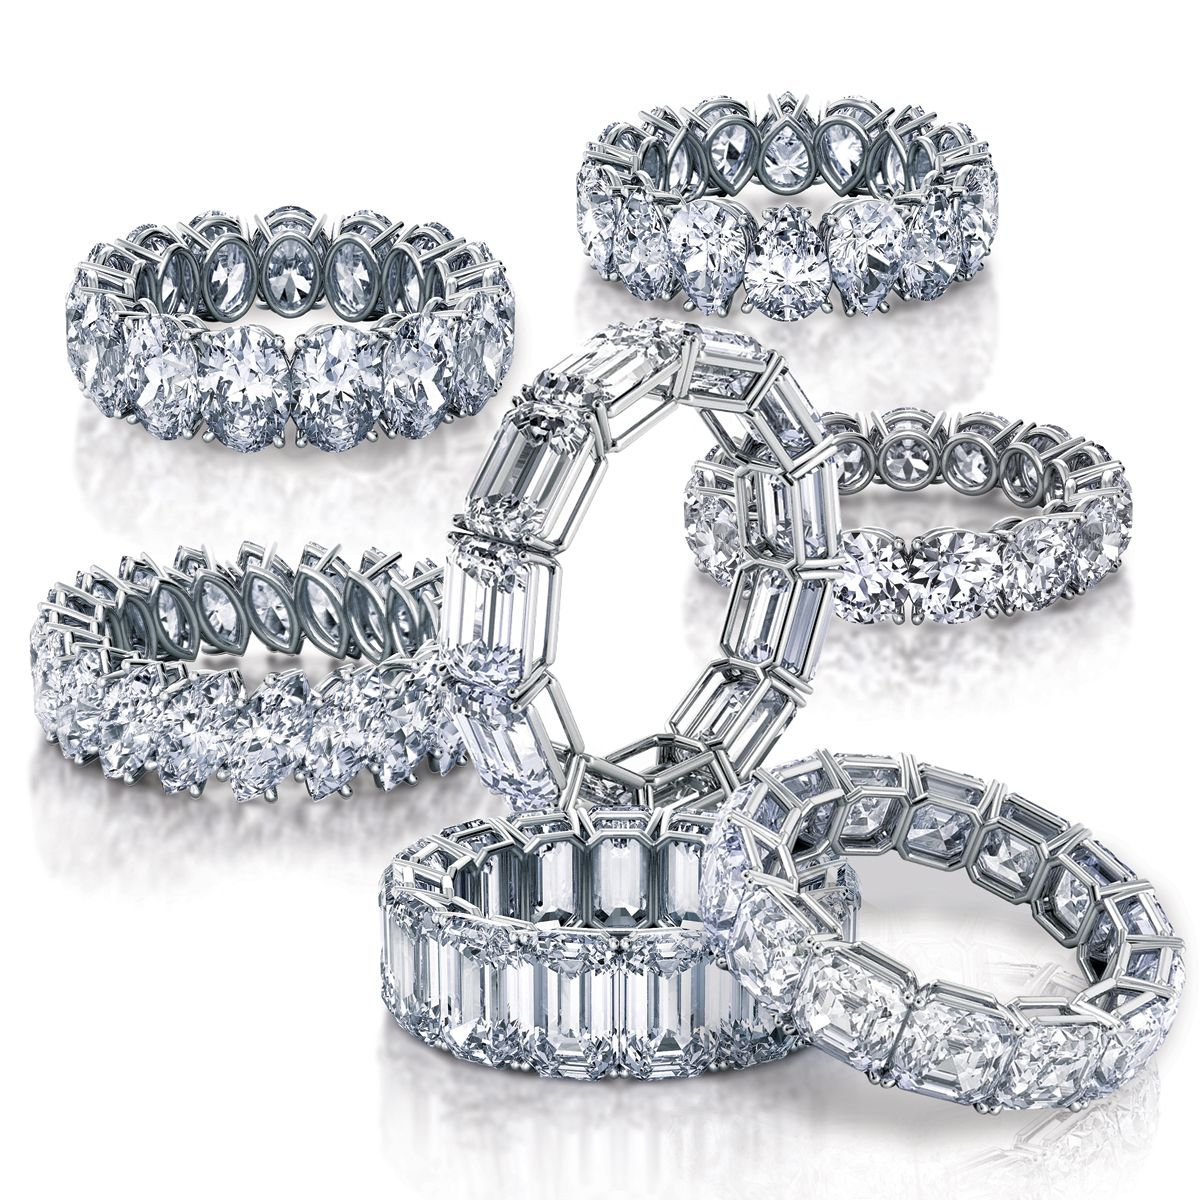 Eternity Bands In Every Fancy Shape You Can Imagine Handcrafted Engagement Ring Luxury Jewelry Brands Unique Wedding Bands